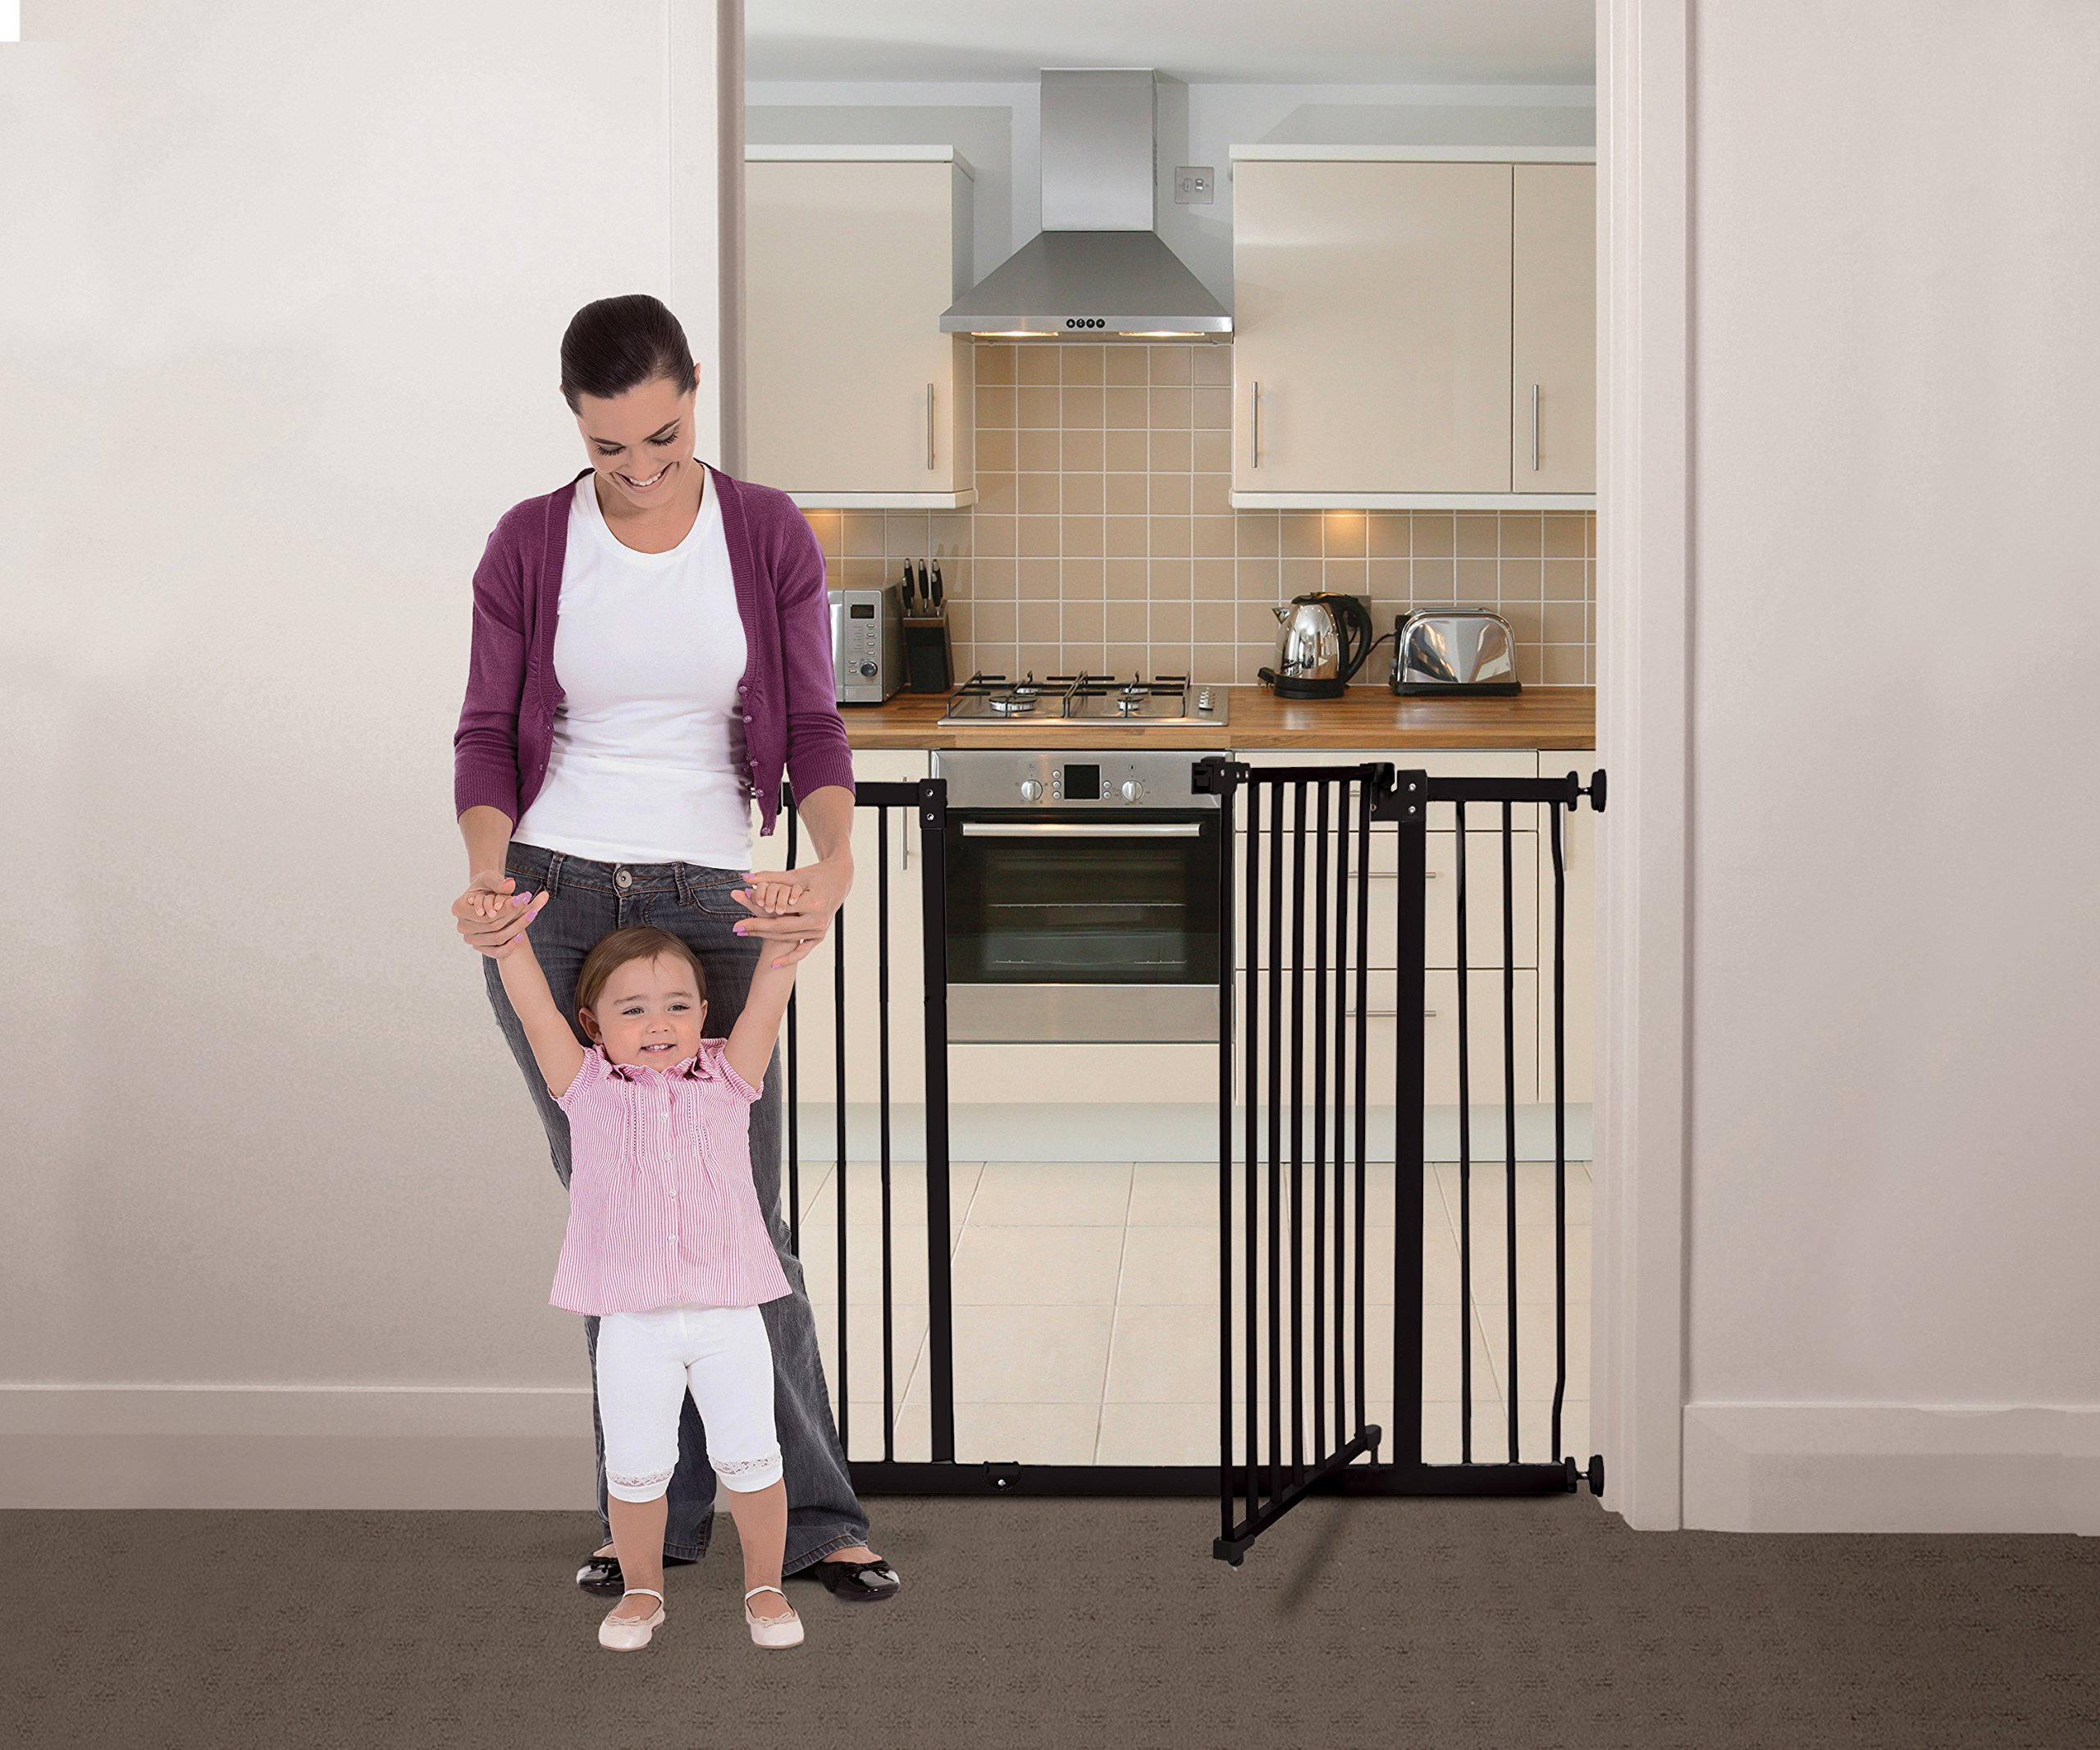 Dreambaby Liberty Xtra-Tall & Wide Safety Gate (Fits 99cm-106cm) Black Dreambaby MEASURE YOUR OPENING BEFORE PURCHASING - This gate ONLY fits openings 99 to 106 cm. It will not fit any opening smaller than 99 cm. If your opening is larger than 106 cm you will require an additional purchase of an extension. VERSATILE AND DEPENDABLE- Our Dreambaby Liberty gate is loaded with features to not only help make your life easier but safer too. Versatile indeed, it can accommodate openings of 99 to 106 cm wide and is 93 cm tall. Using optional extensions sold separately, the gate can be extended up to 306 cm. ONE HANDED OPERATION - The One-Handed operation is fantastic for times when you're holding your child and the double locking feature ensures extra security to help keep your child safer. 5